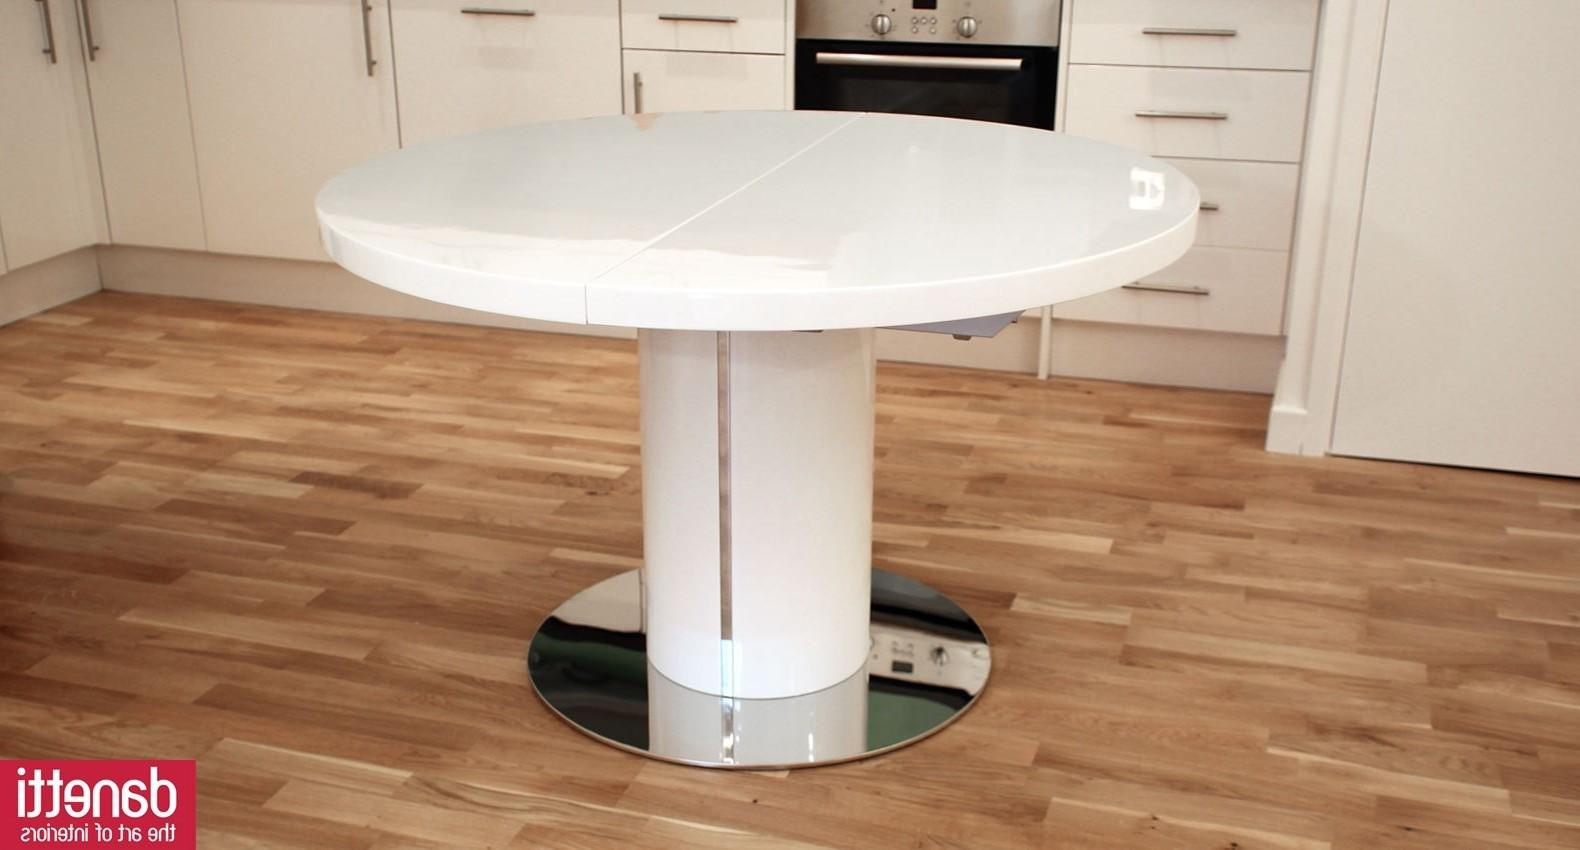 Small Space Saving Kitchen Tables Furniture